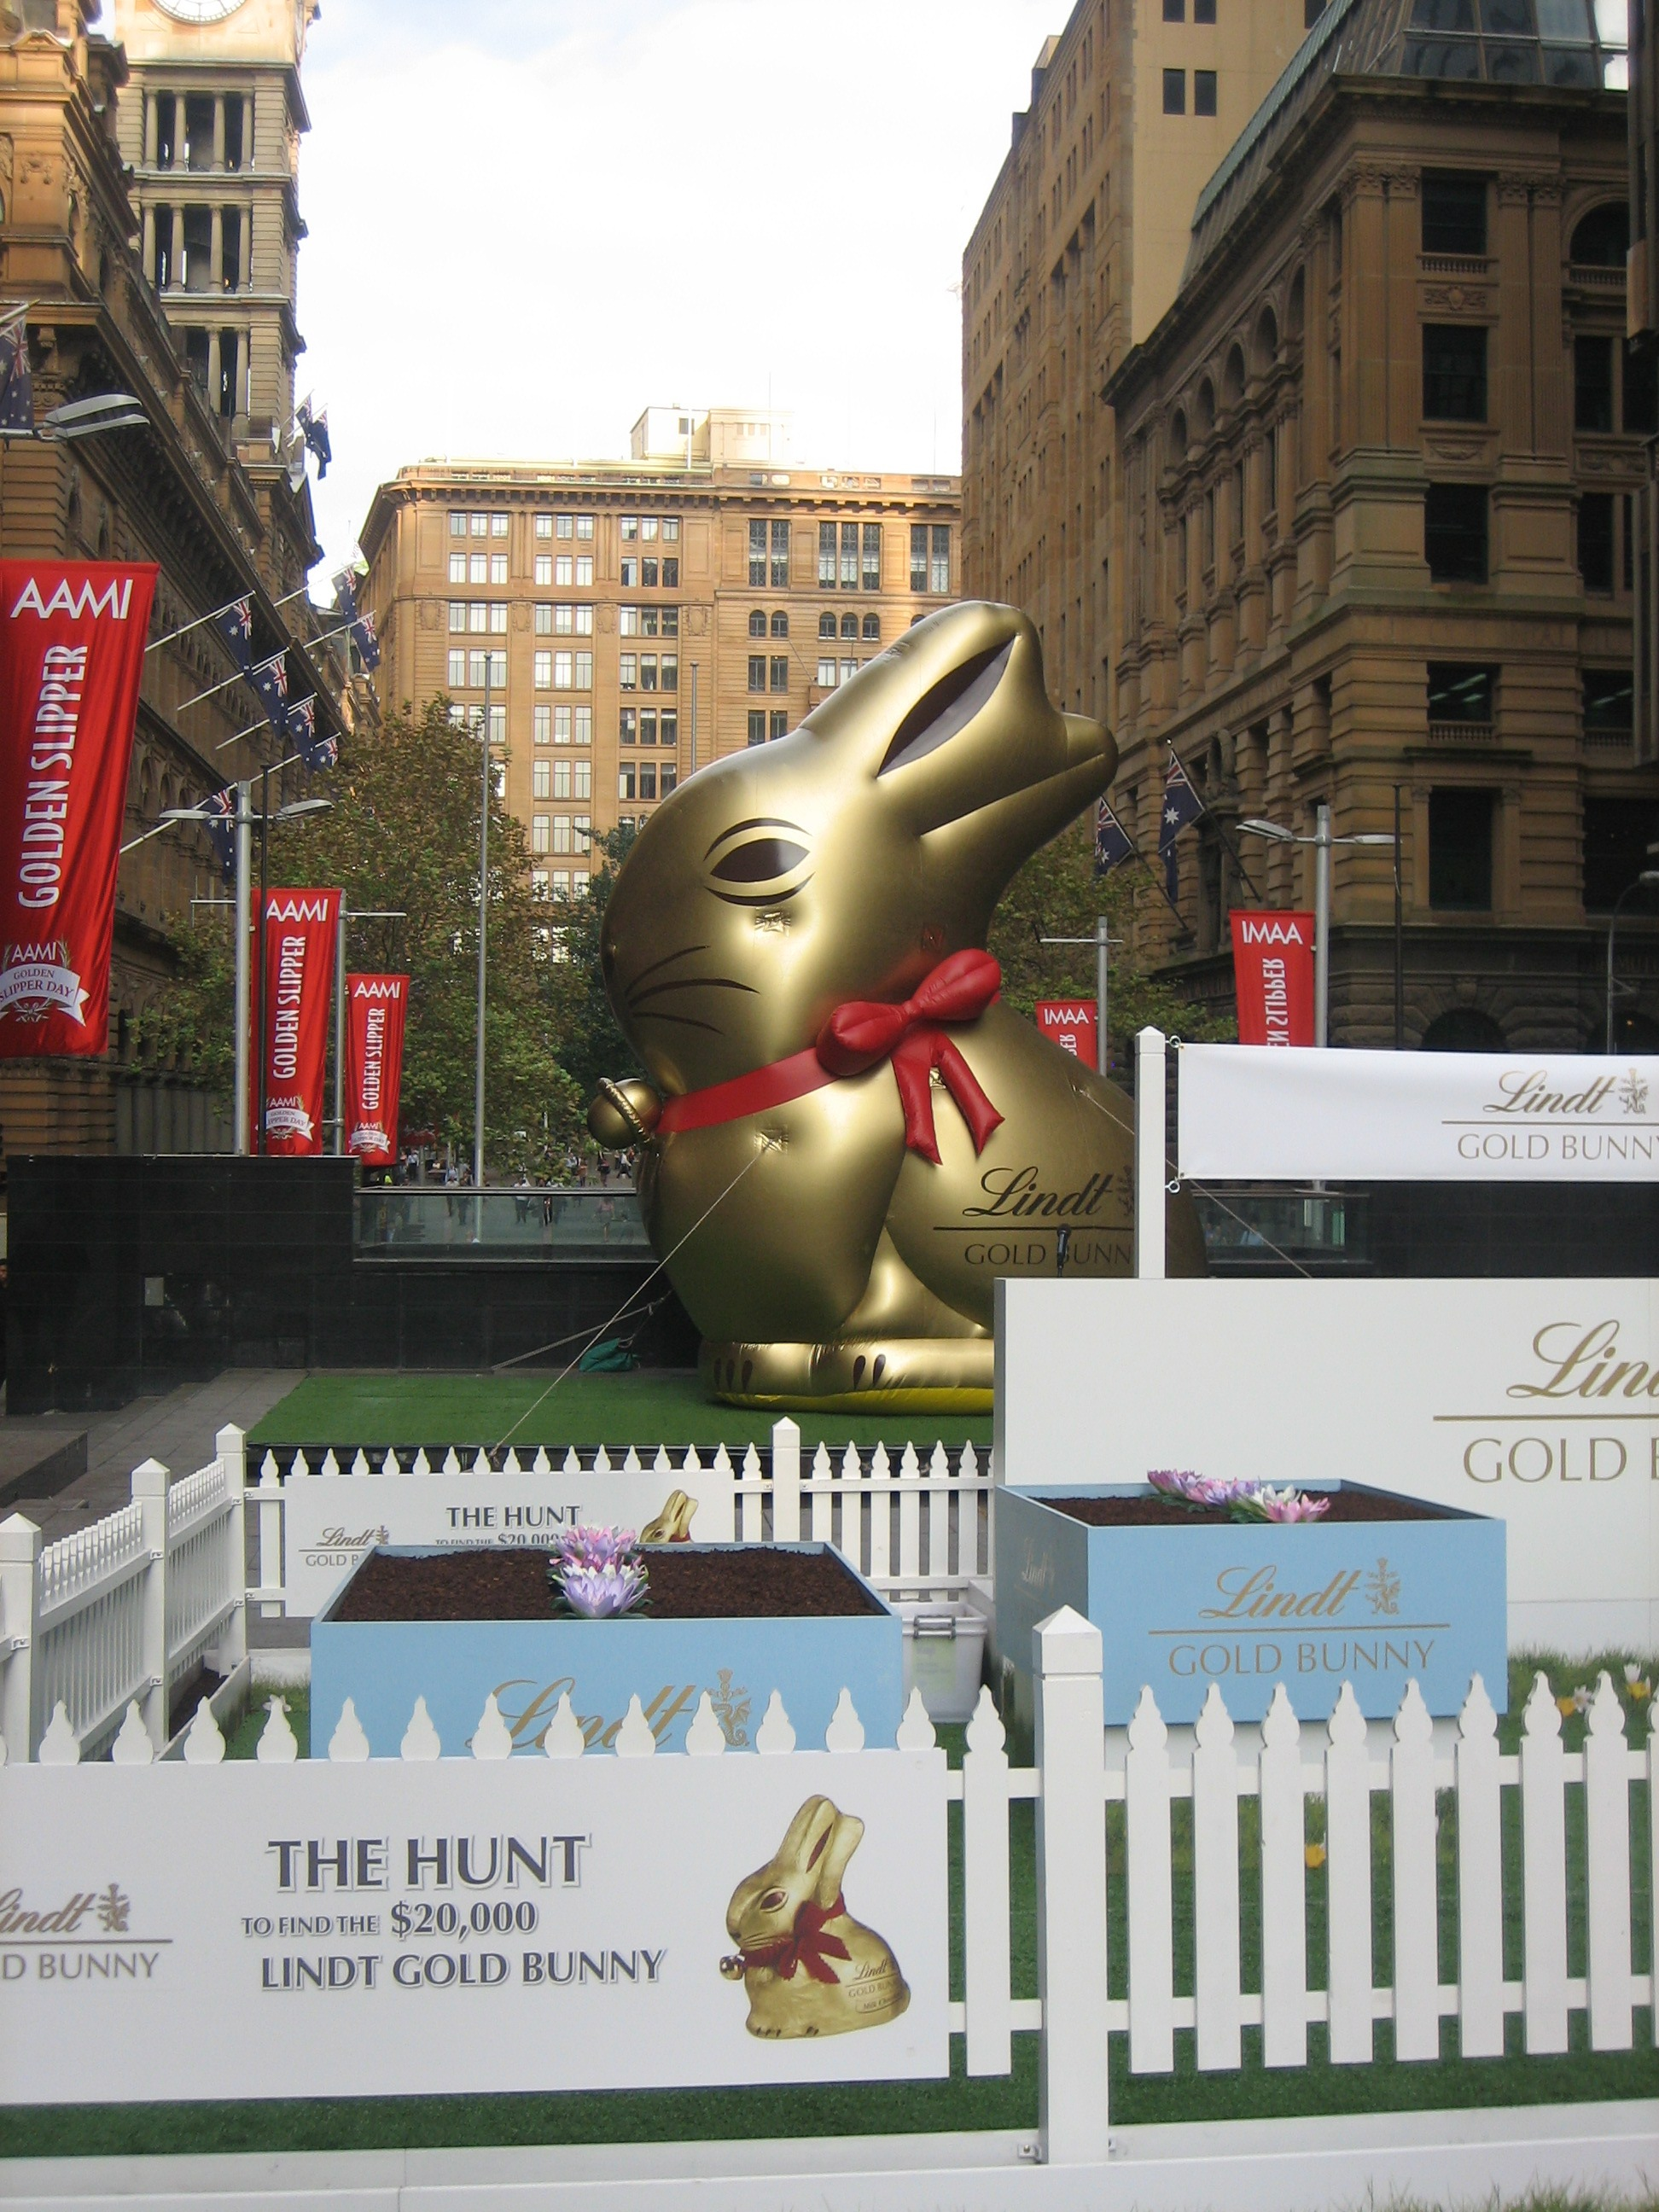 Lindt Brand Experience, Martin Place, Sydney